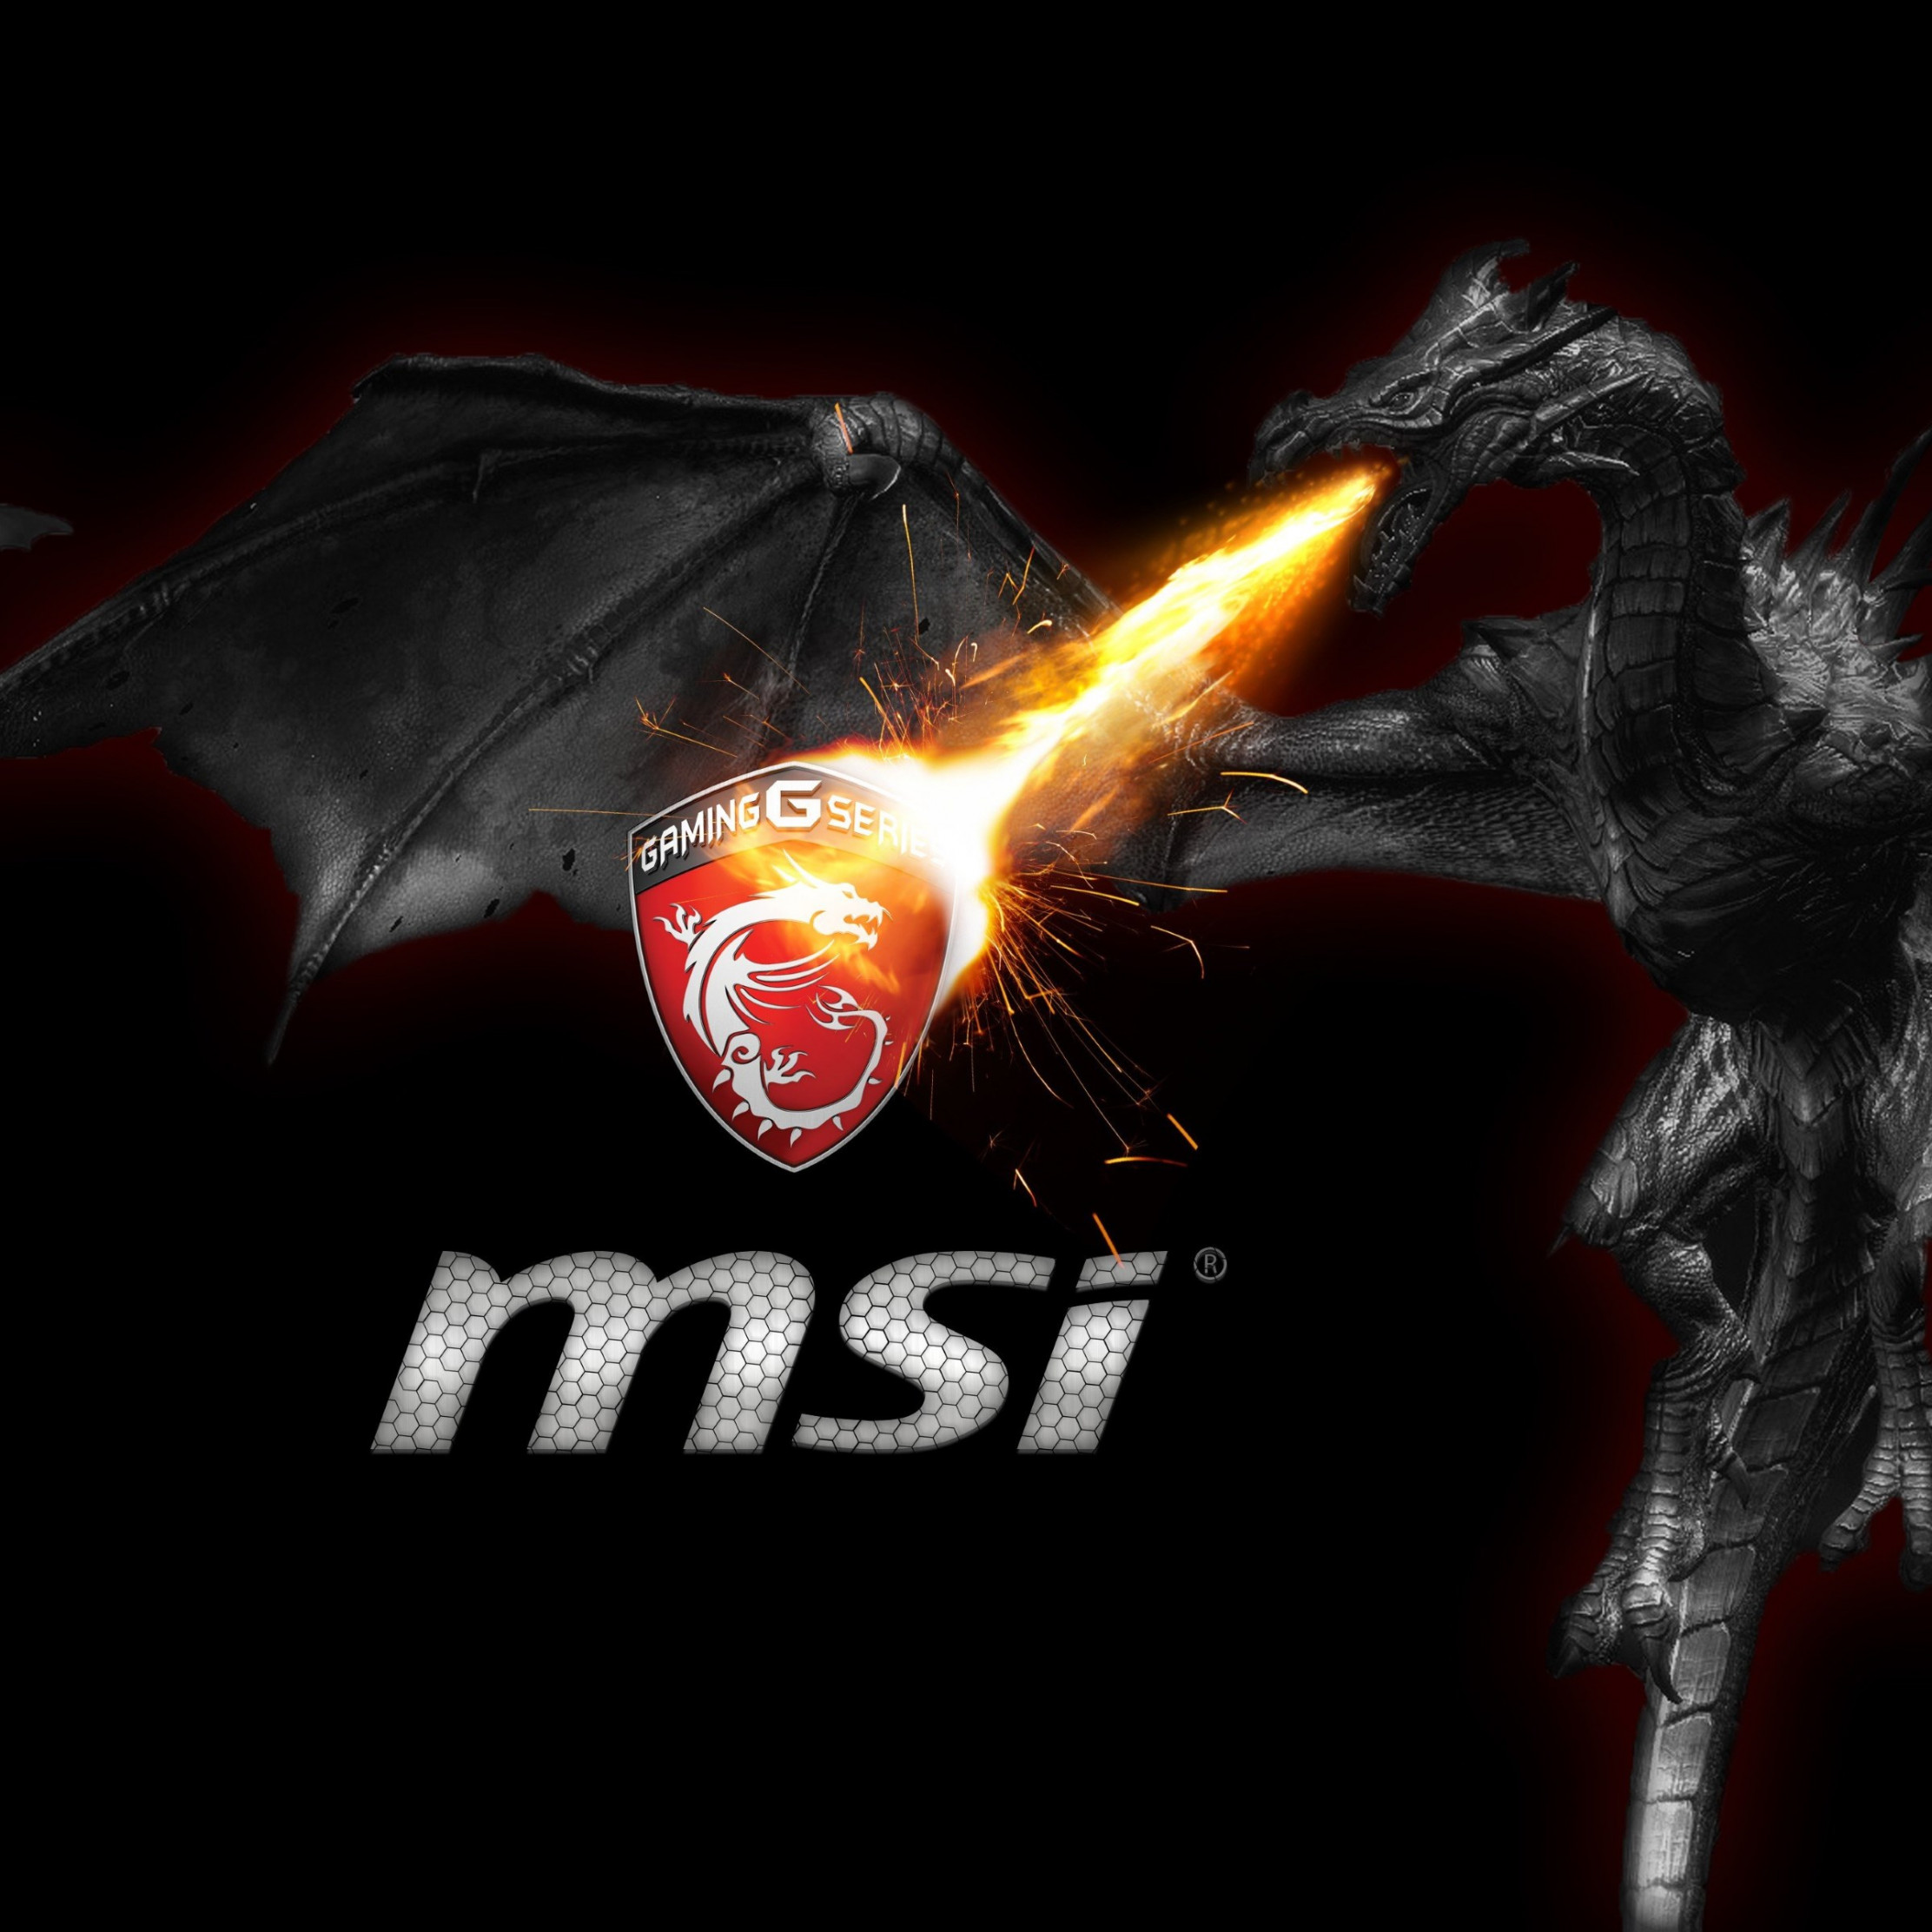 MSI G Series wallpaper 2224x2224